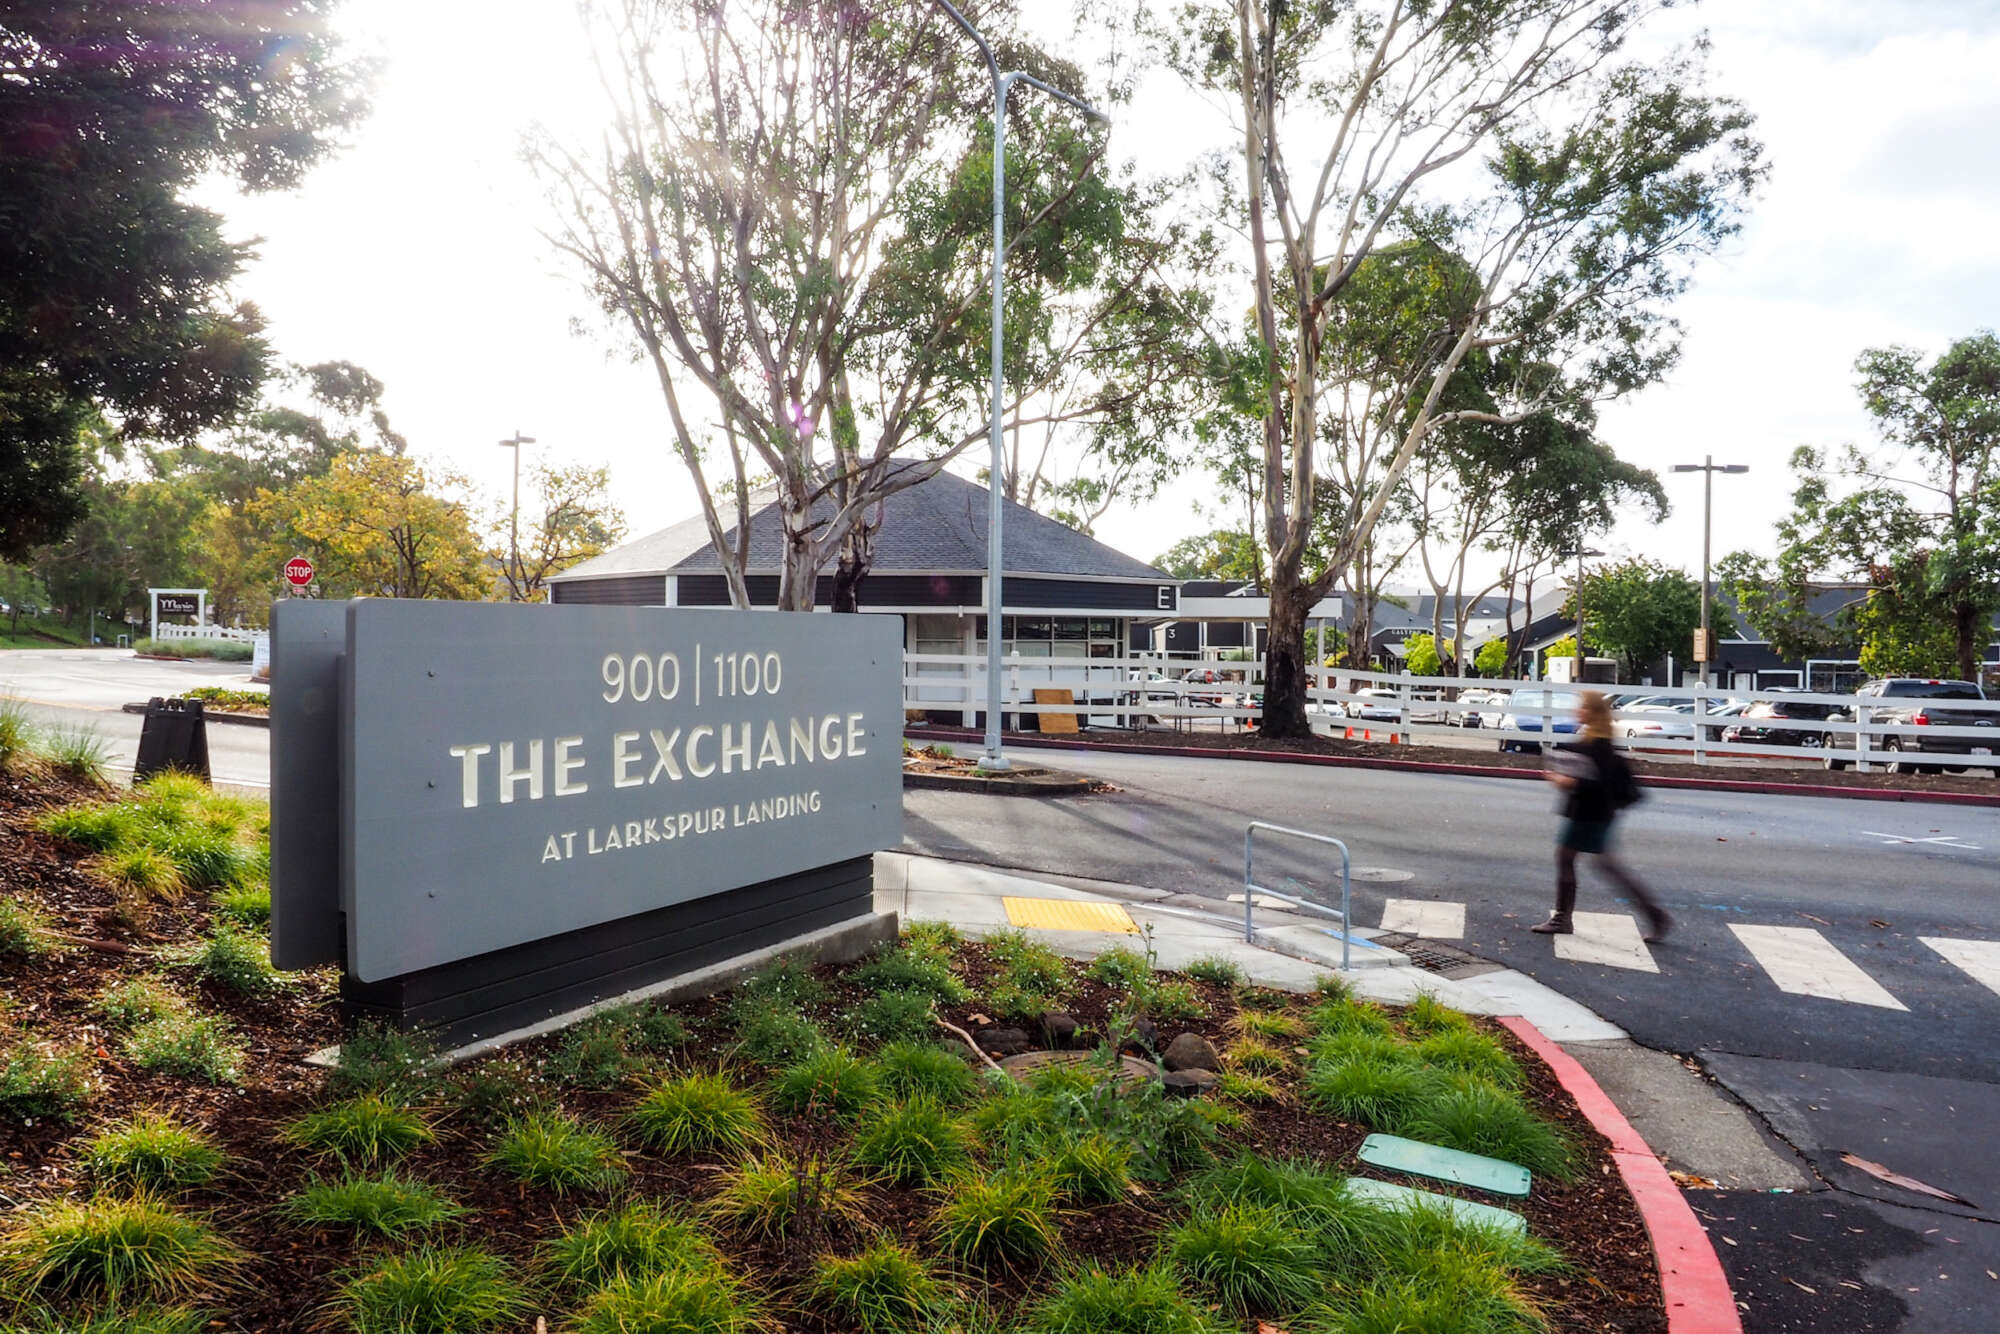 Street signage of The Exchange at Larkspur Landing with a person crossing the road nearby